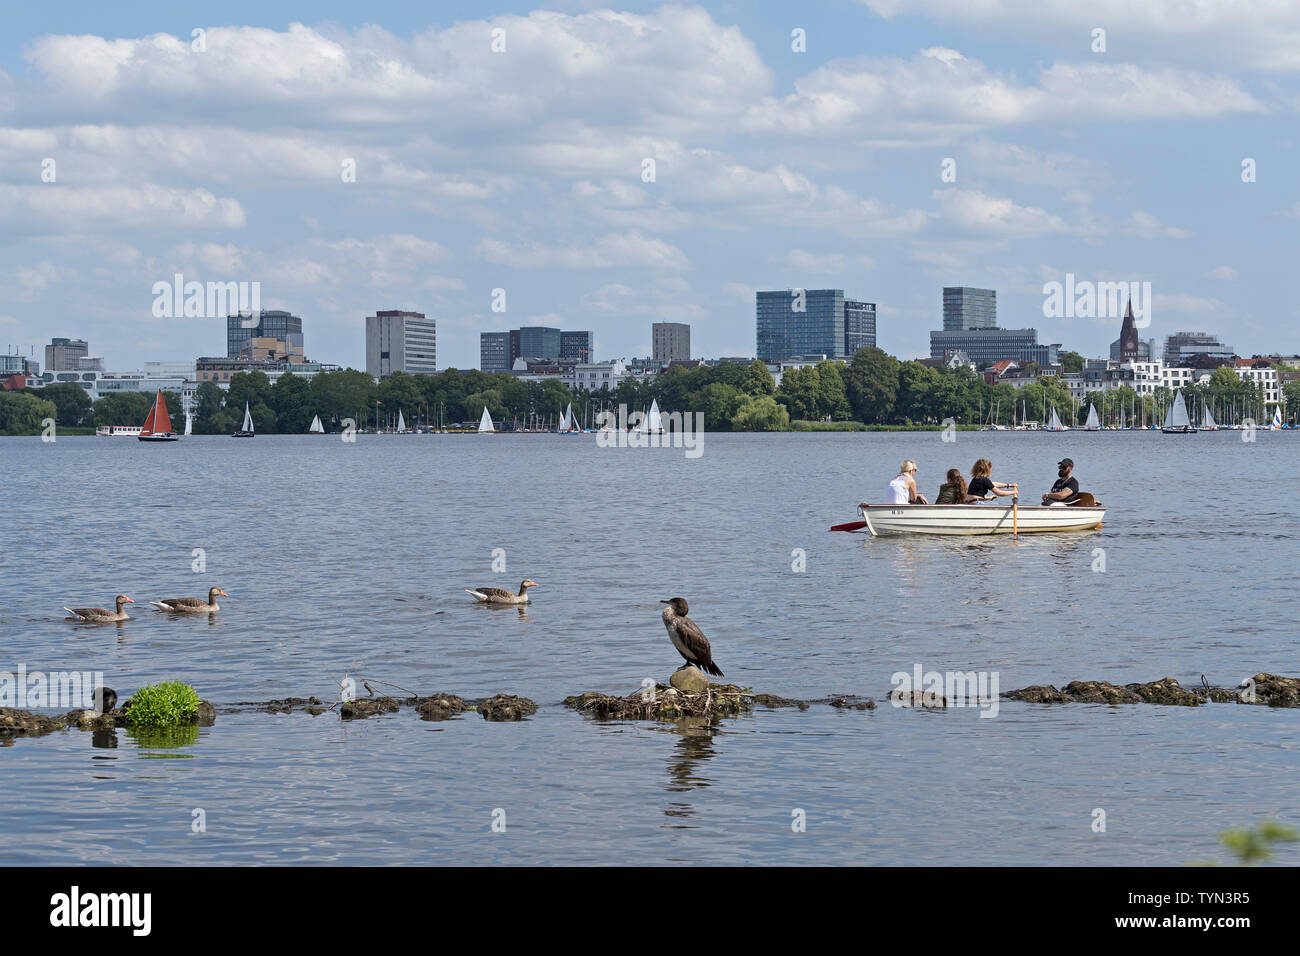 great cormorant (Phalacrocorax carbo), Outer Alster, Hamburg, Germany - Stock Image